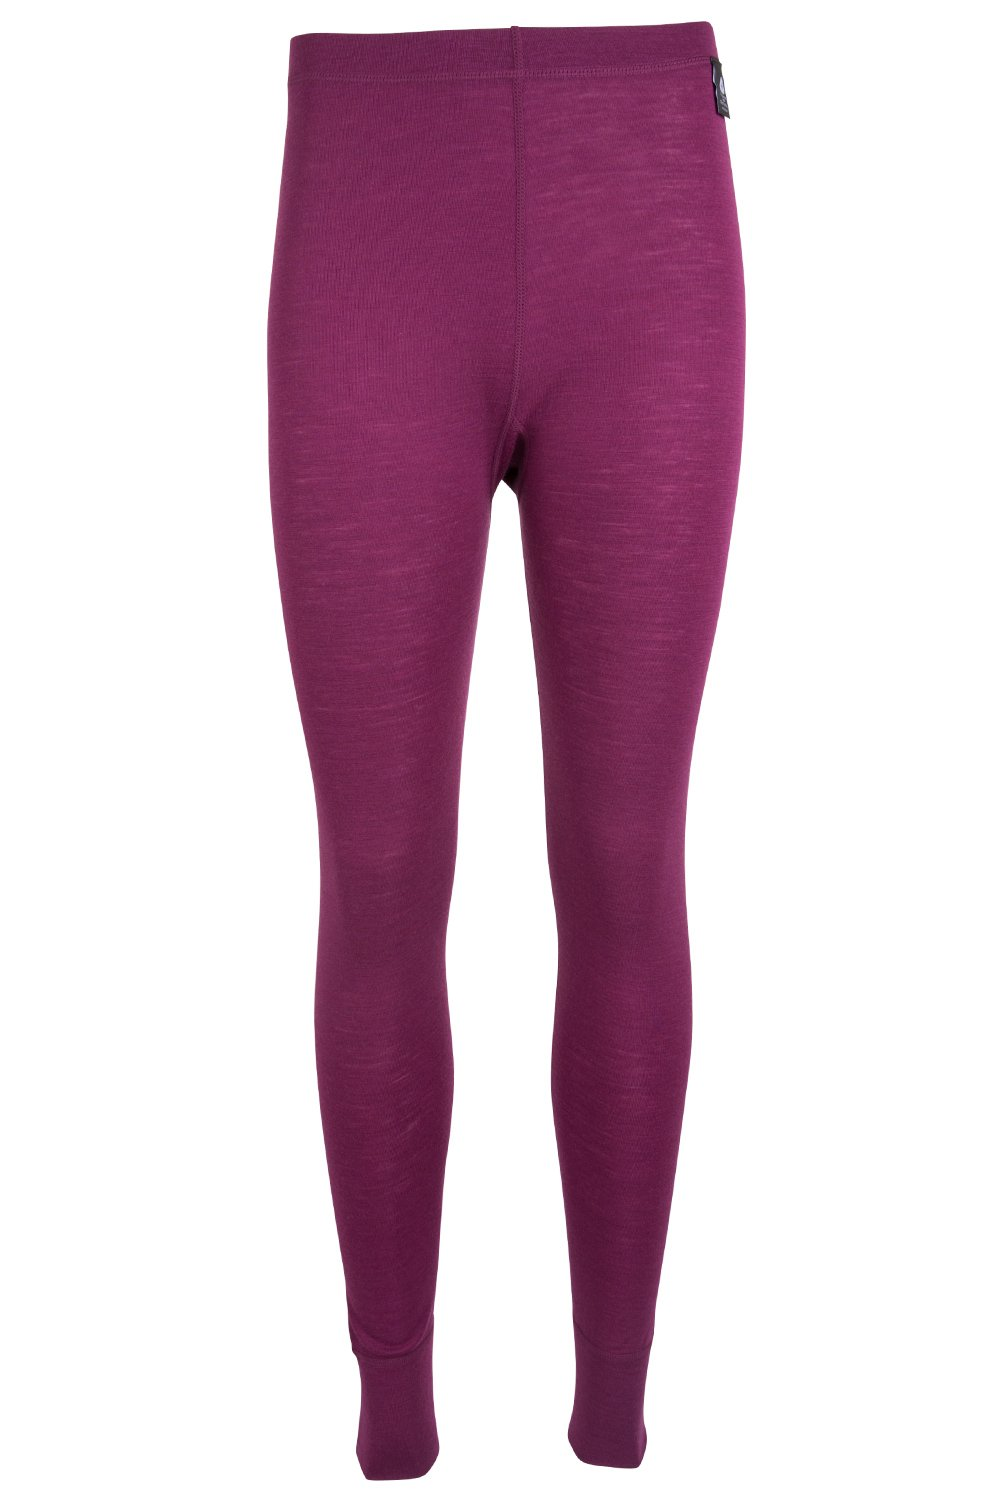 Mountain Warehouse Merino Womens Thermal Base Layer Pants - Lightweight Trousers, Breathable, Antibacterial Bottoms, High Wicking, Easy Care -Ideal for Travelling 1